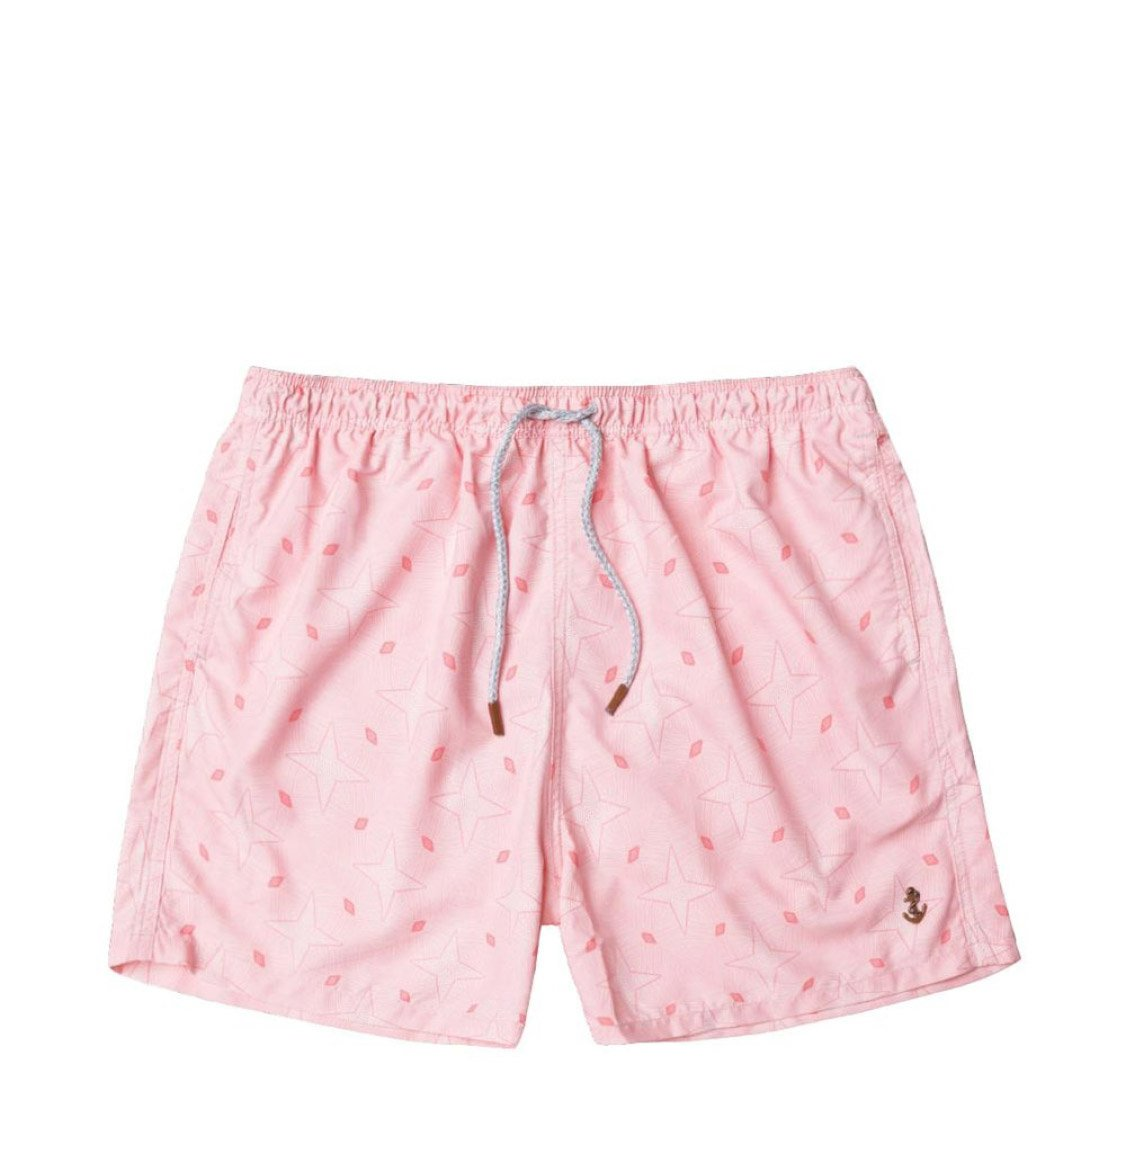 Retromarine Stars Pink Swim Shorts